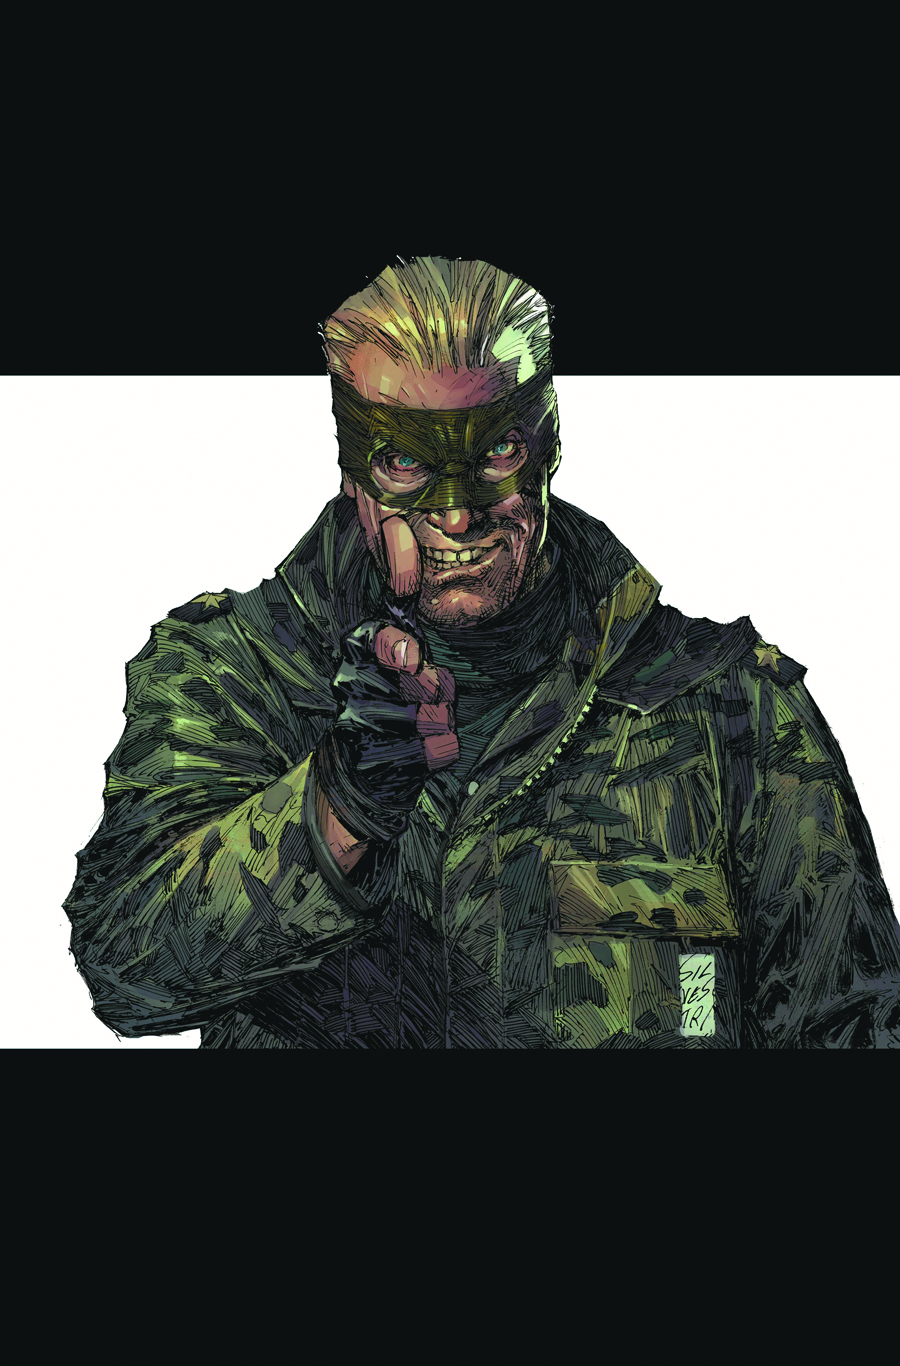 KICK-ASS 3 #1 (OF 8) 2ND PTG SILVESTRI VAR (MR)